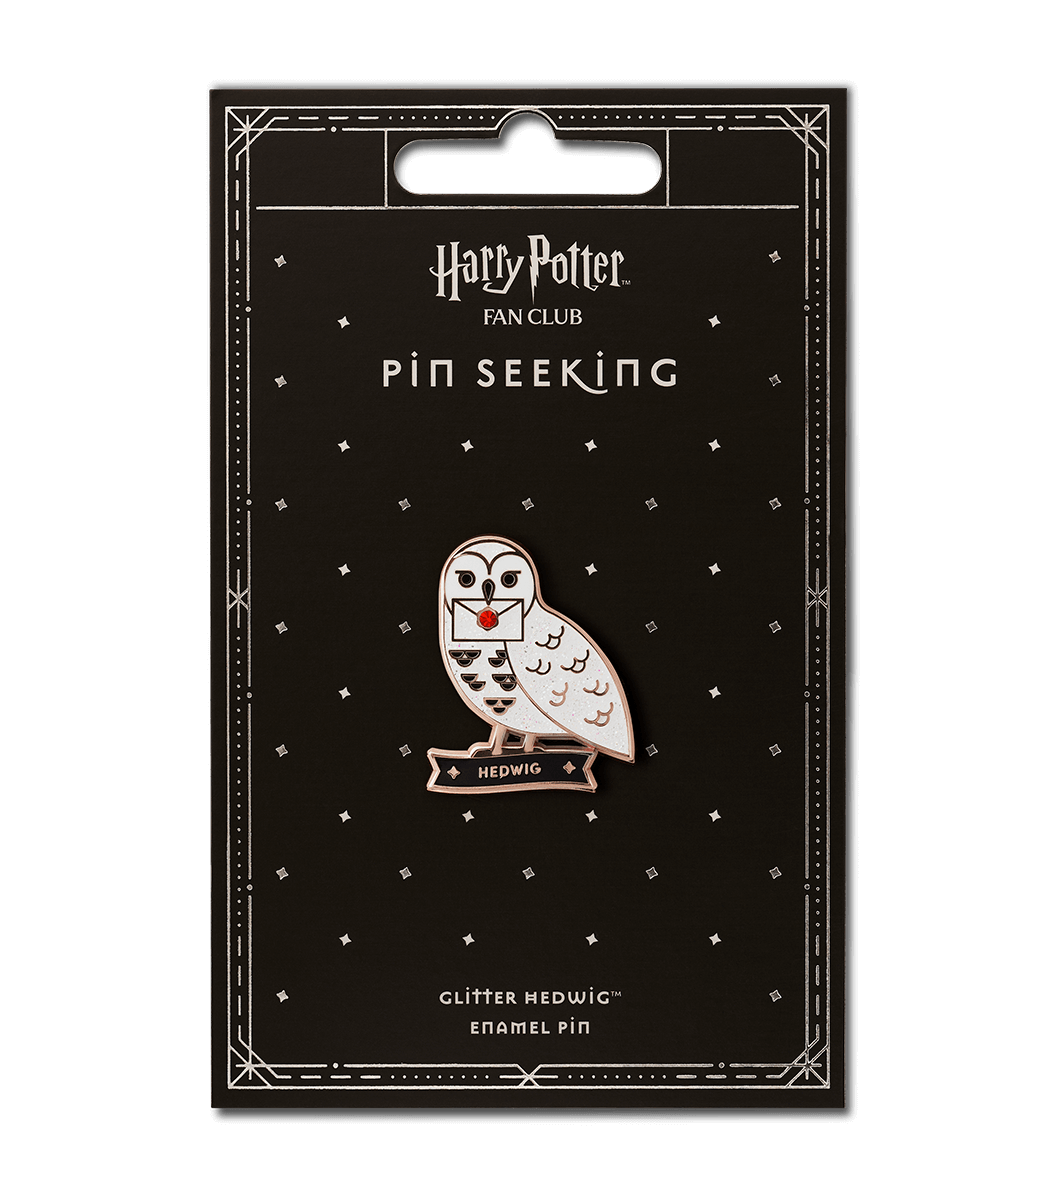 Harry Potter Pins